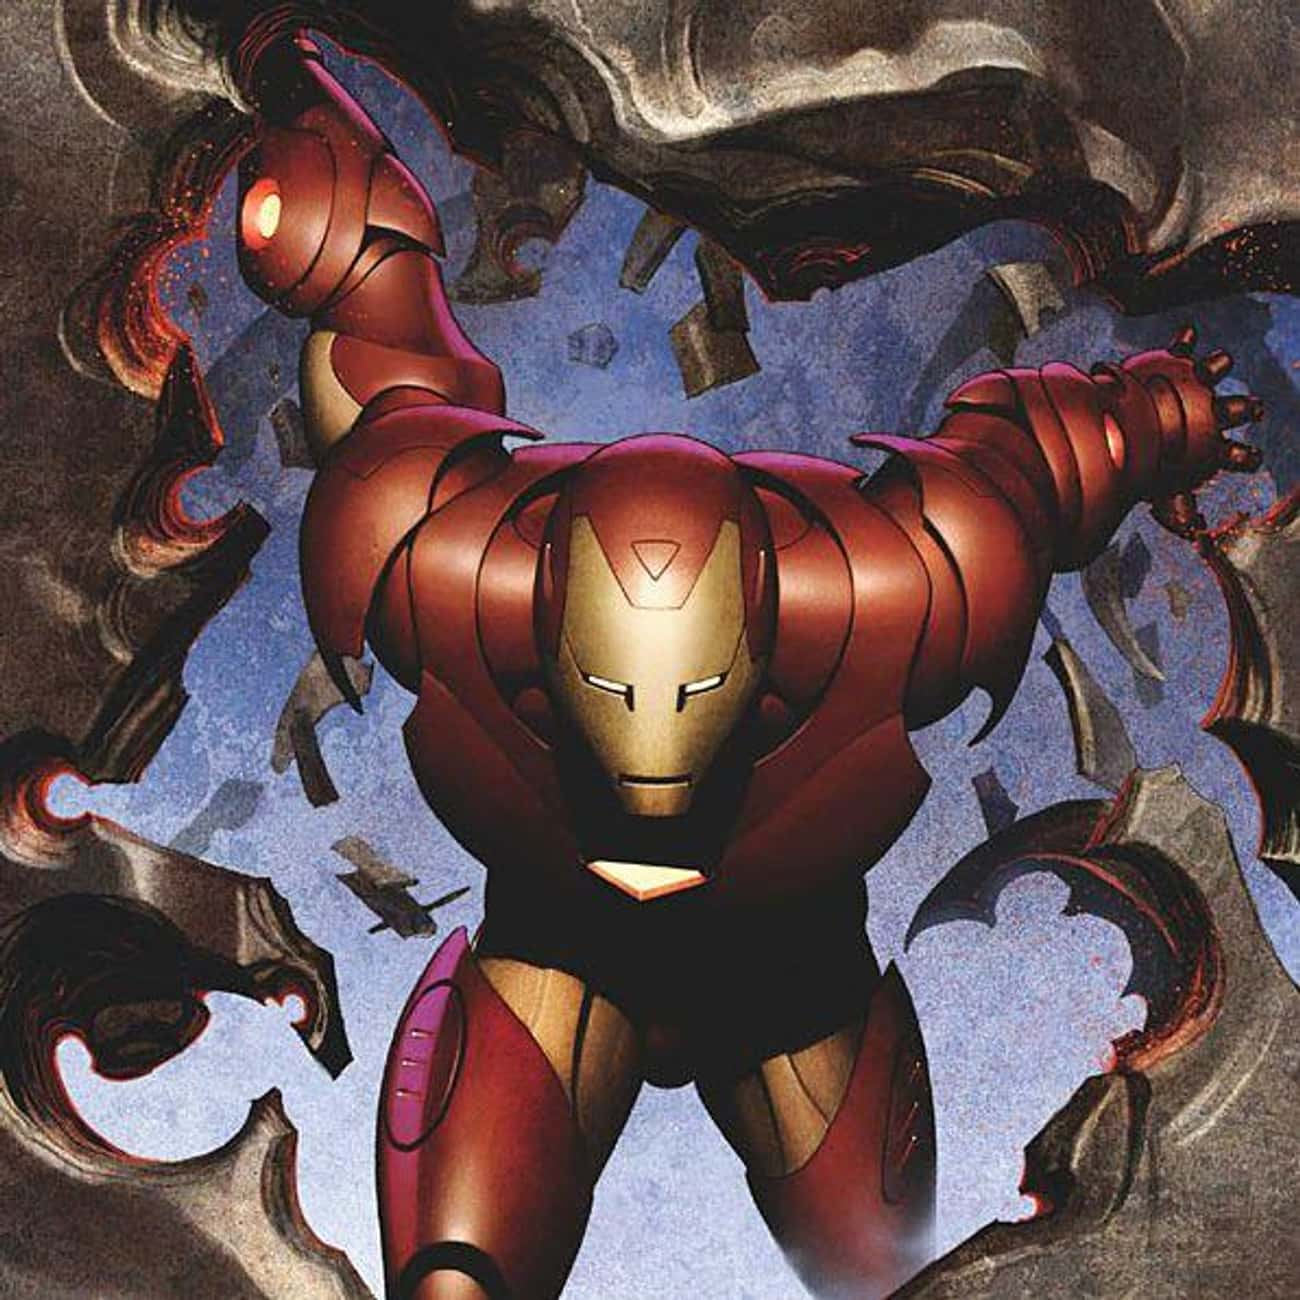 Iron Man Is One Of The Tallest Avengers, Standing 6'6""